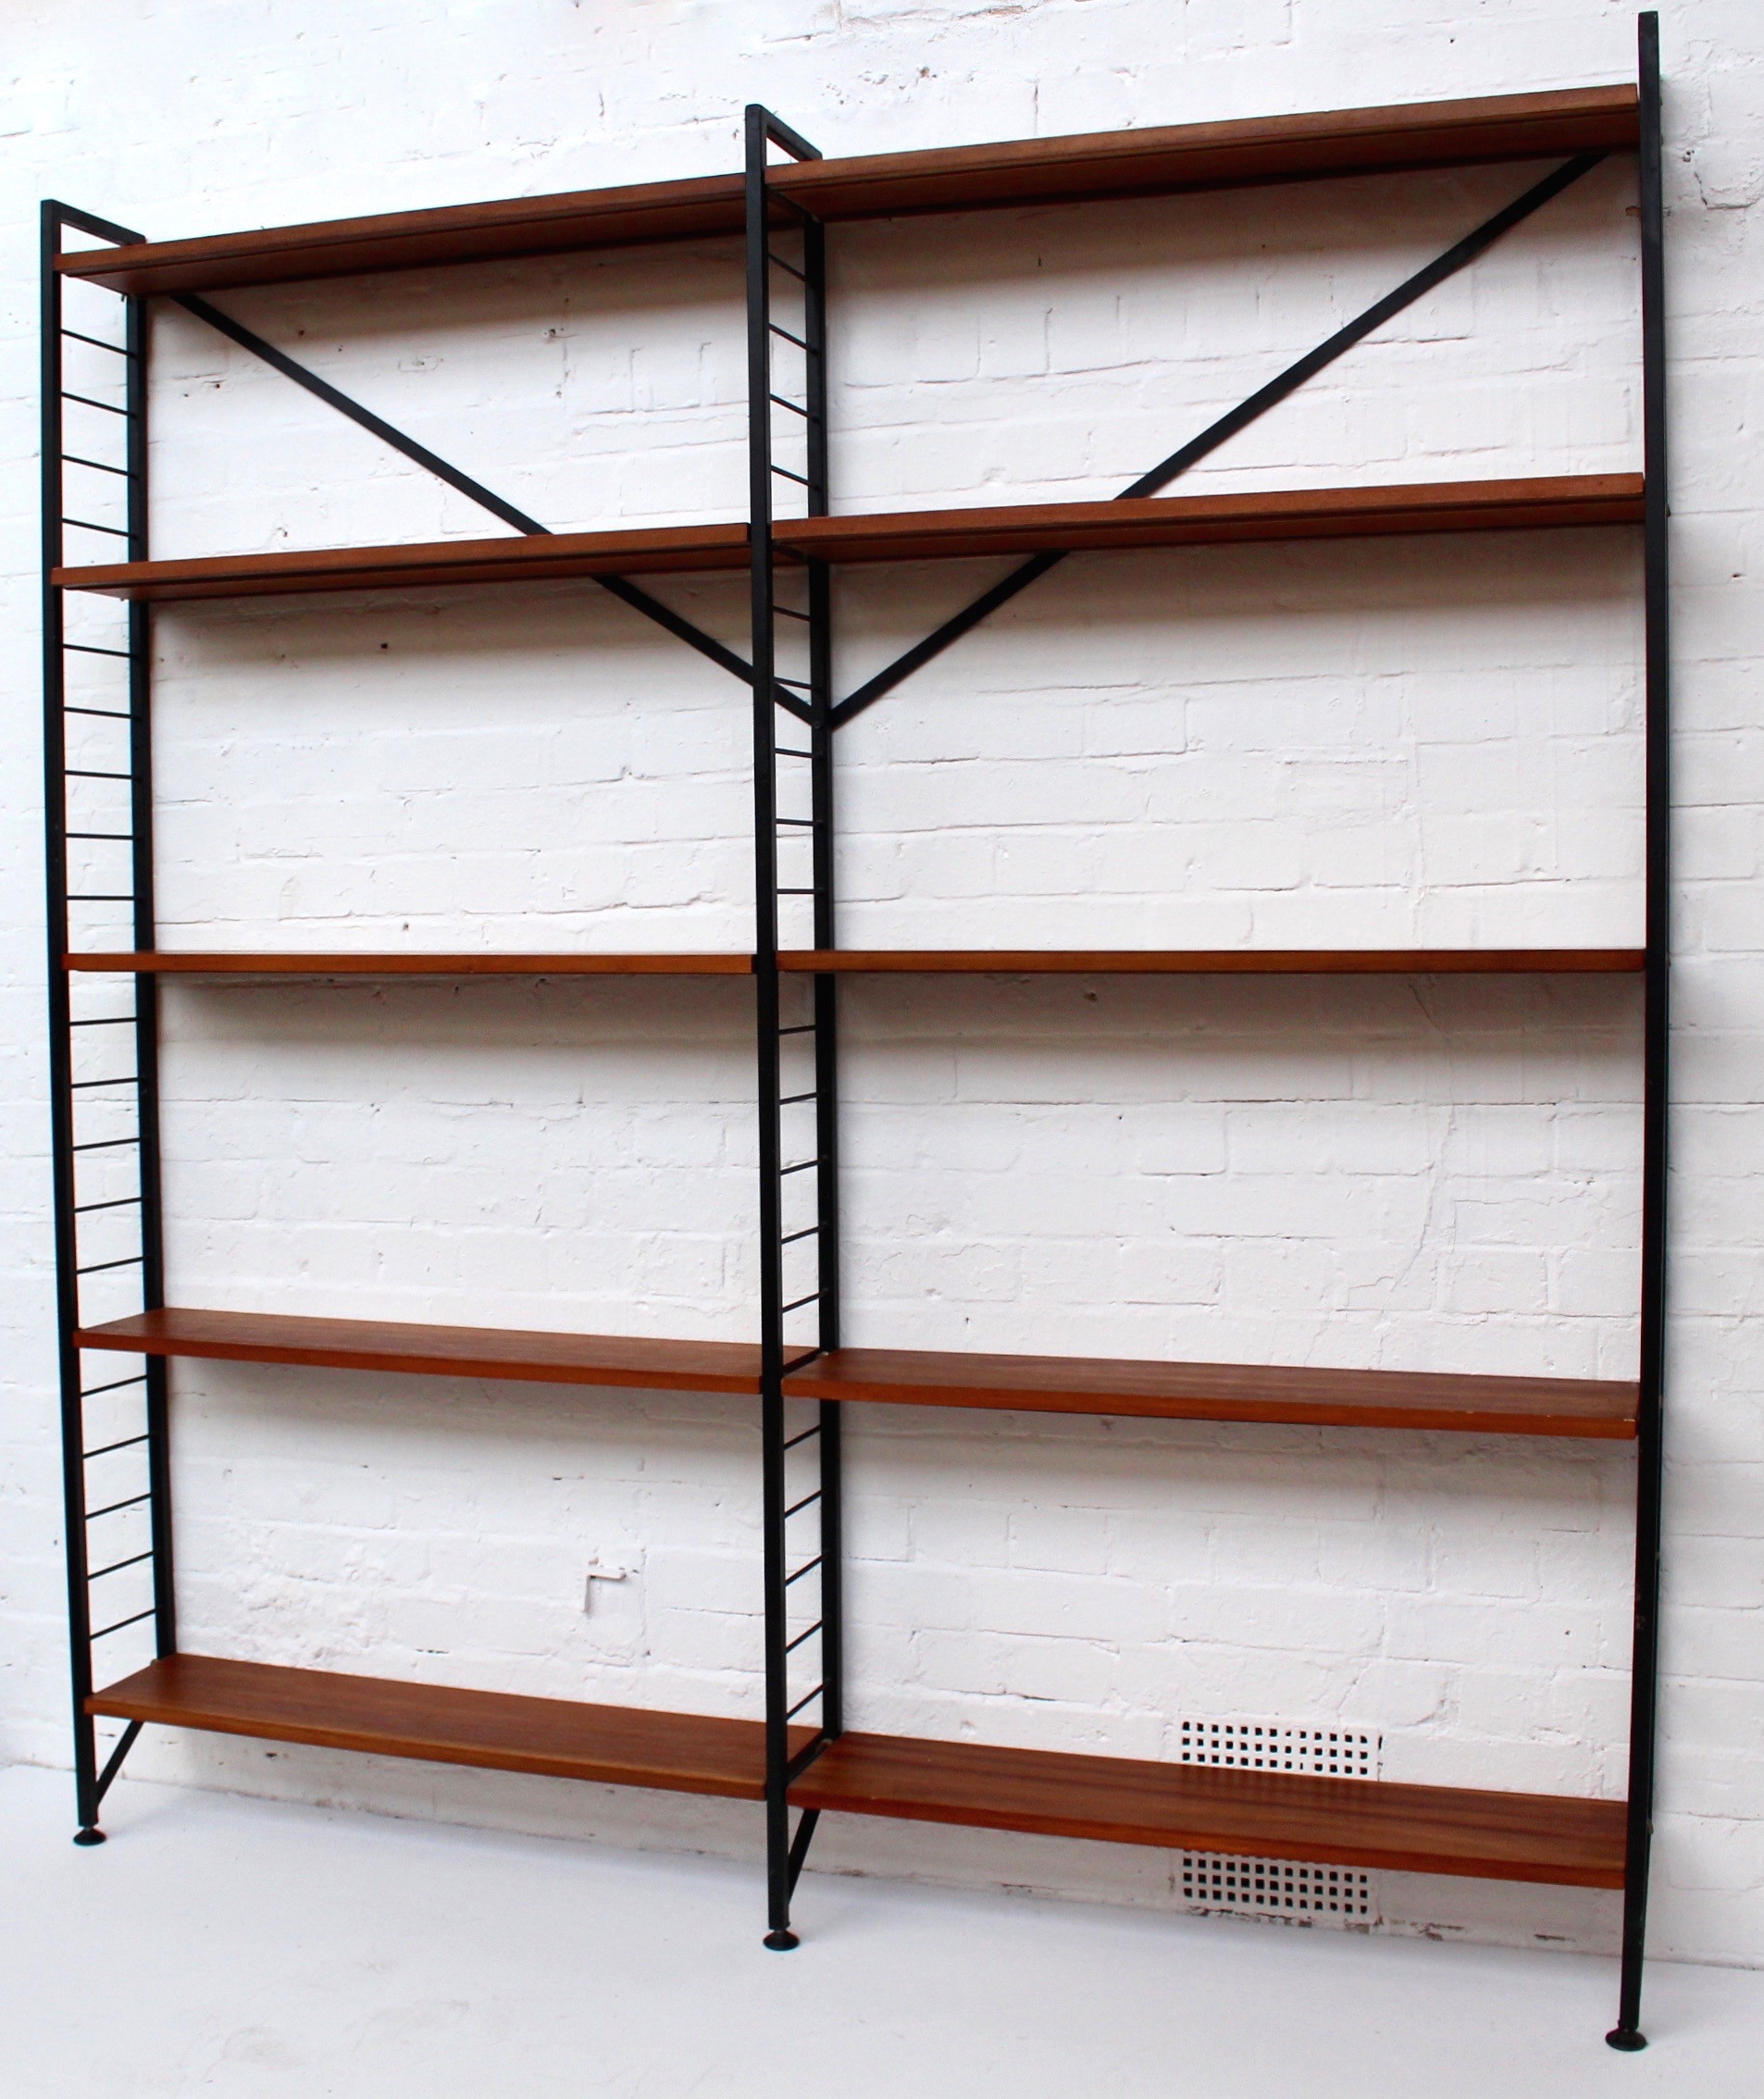 wooden size full of bookcase laminated bookcases anymore medium yellow not purple hardowrd vase brown decorate shade room rugs area the lamp white wall nerd big picture desk amaranth frame floor flower staples fashionable for cream black just varnished